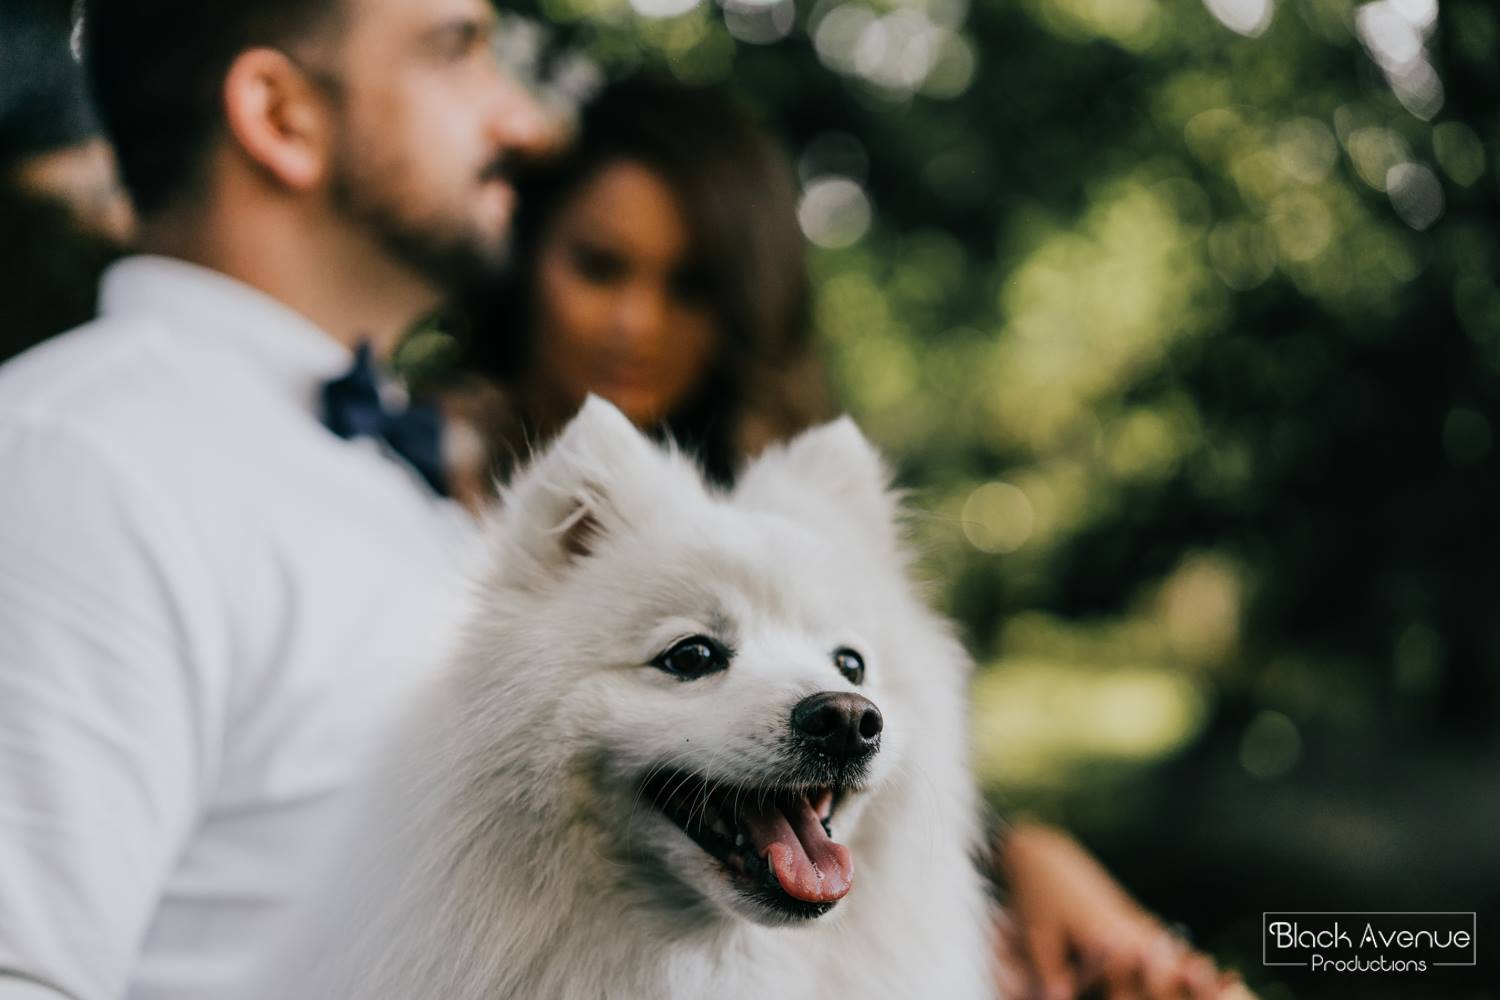 A white fluffy dog photo bomb an engaged couple during engagement photography session and looks very cute